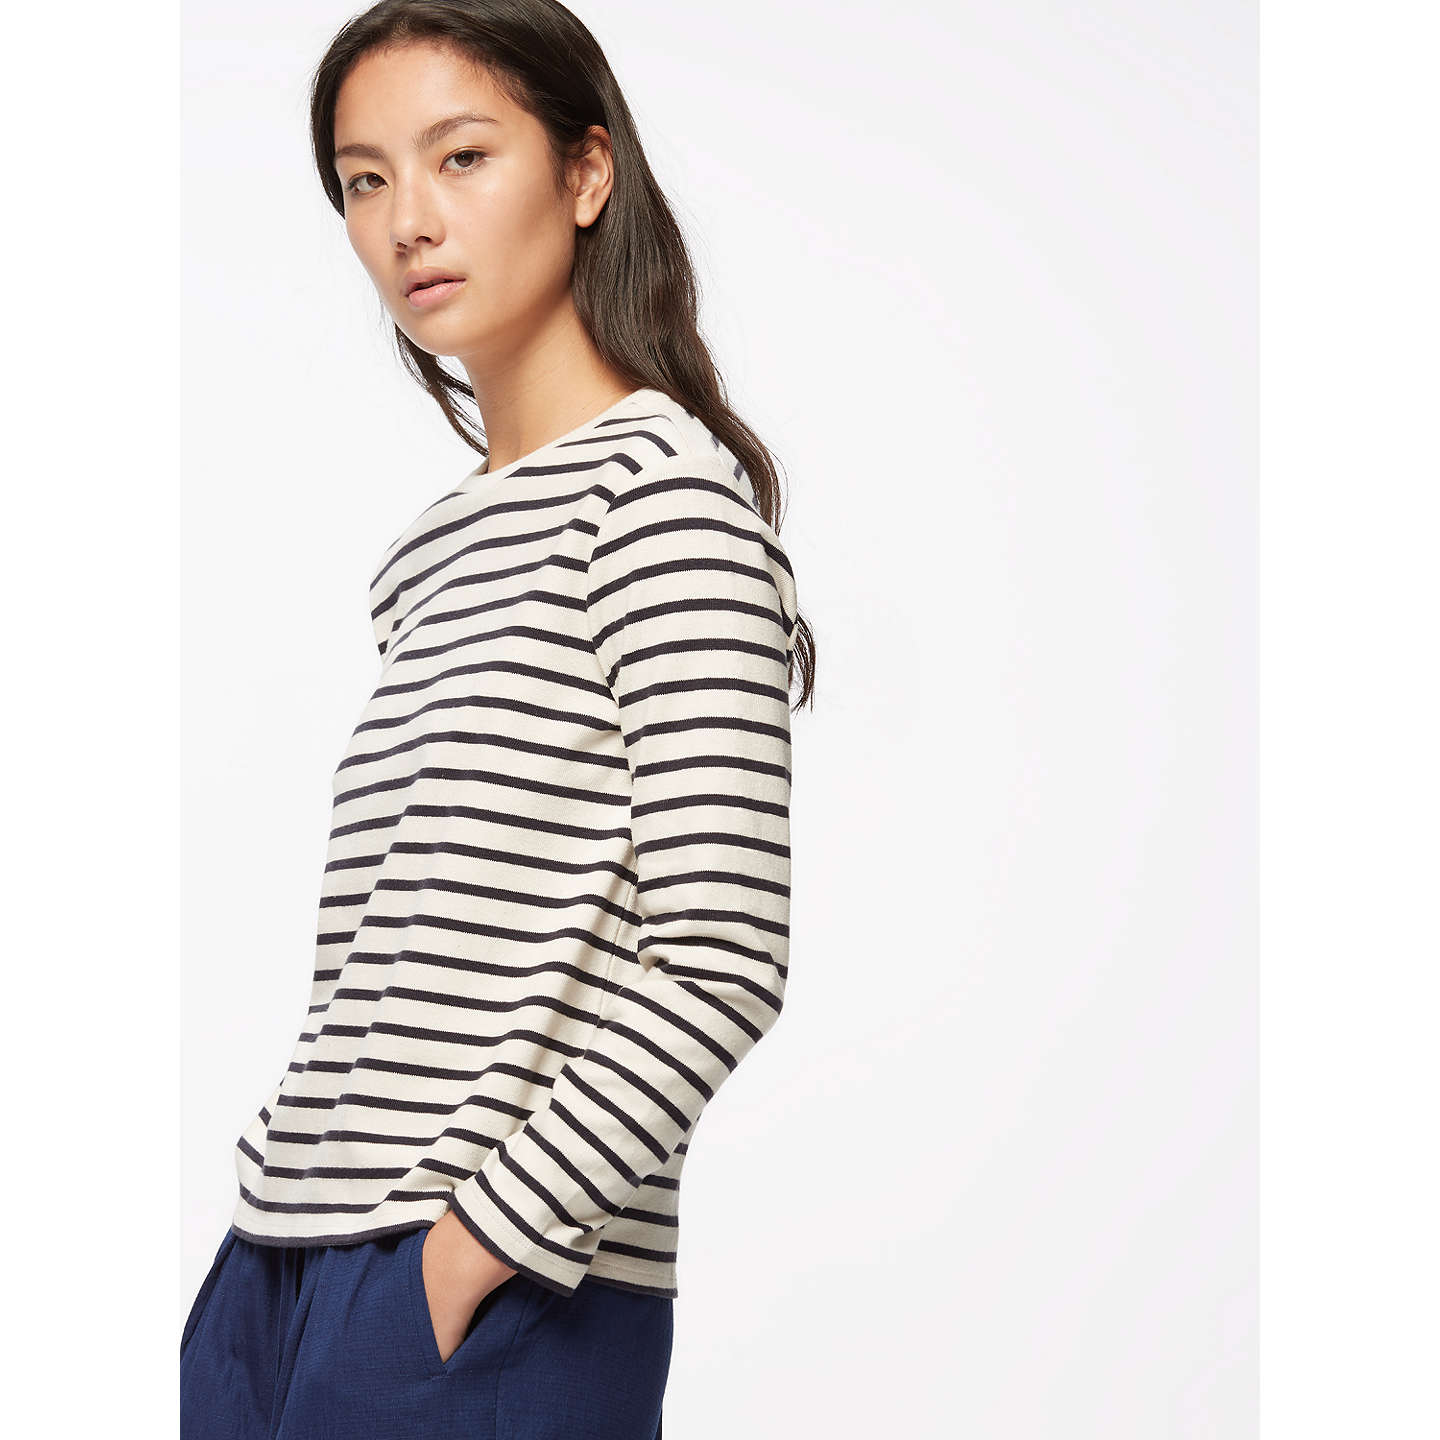 BuyJigsaw Cotton Breton Top, Smoke, XS Online at johnlewis.com